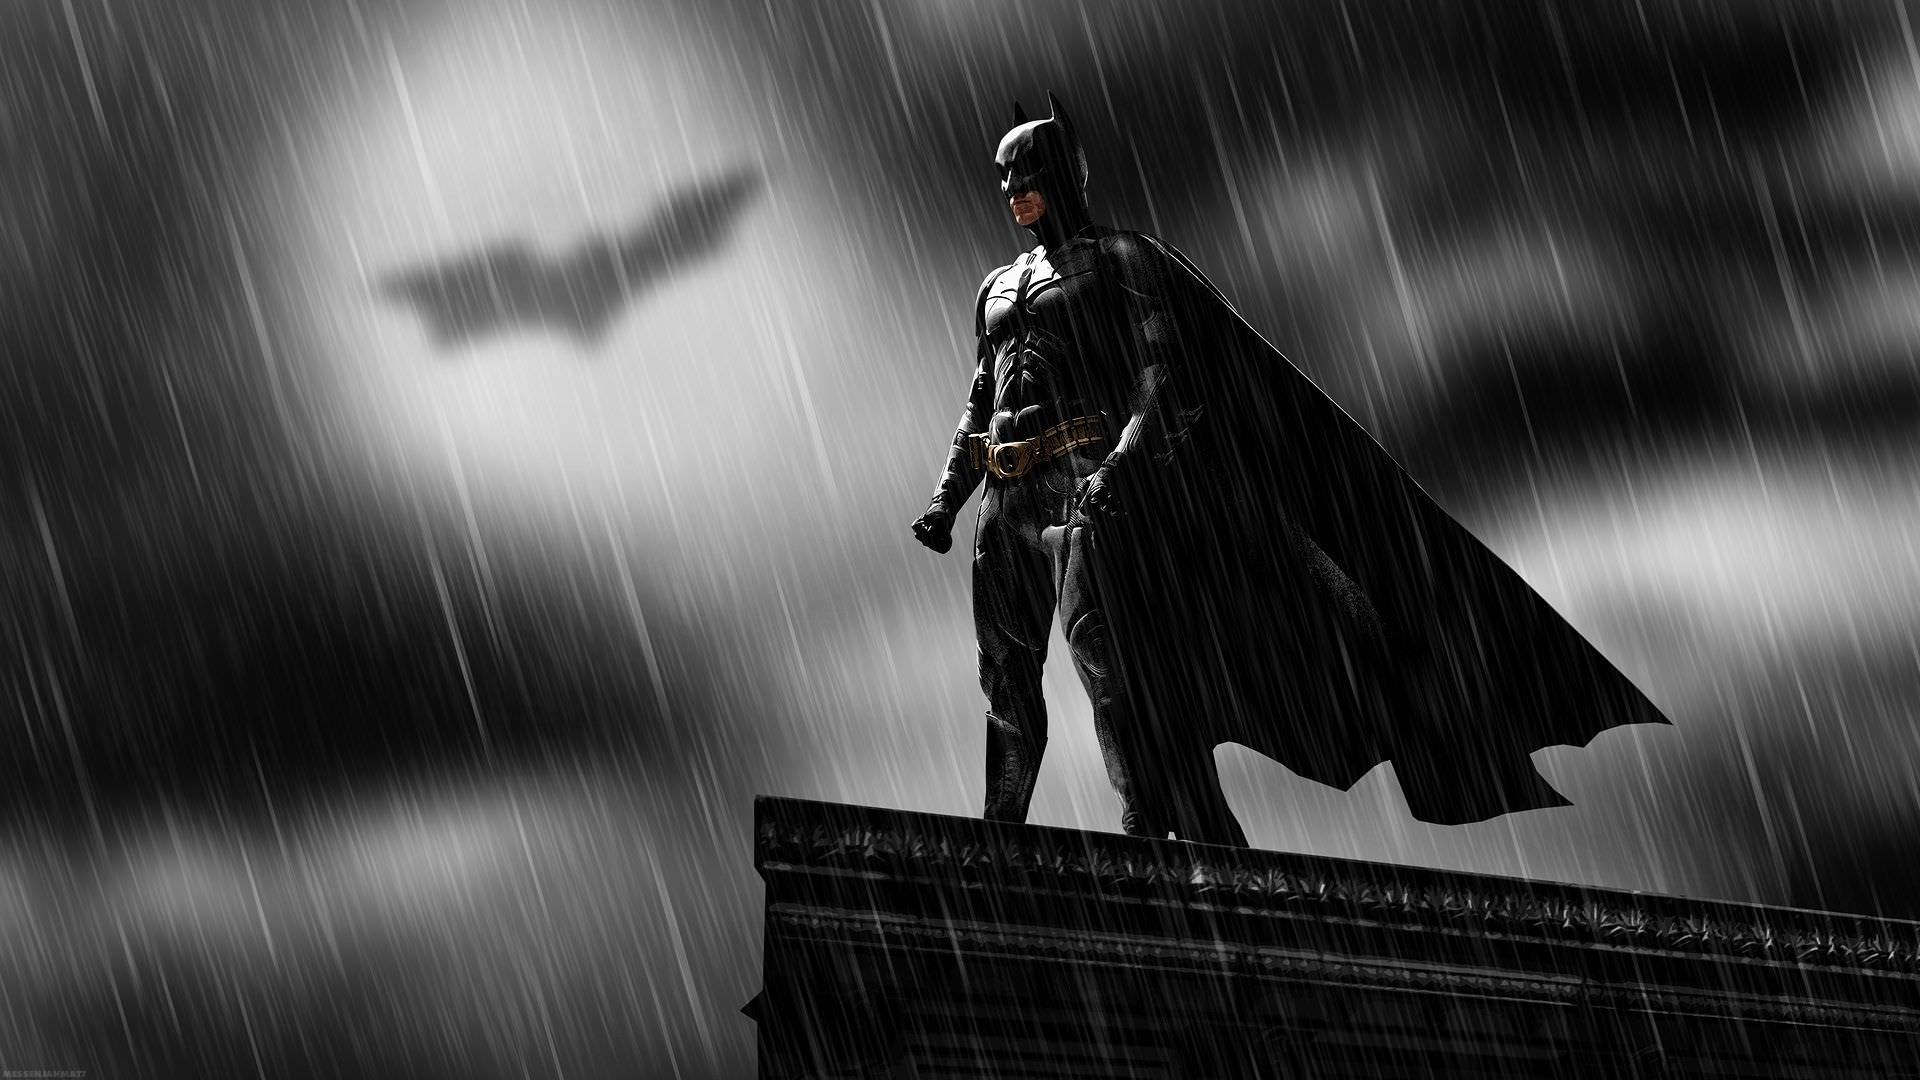 batman in rain wallpaper